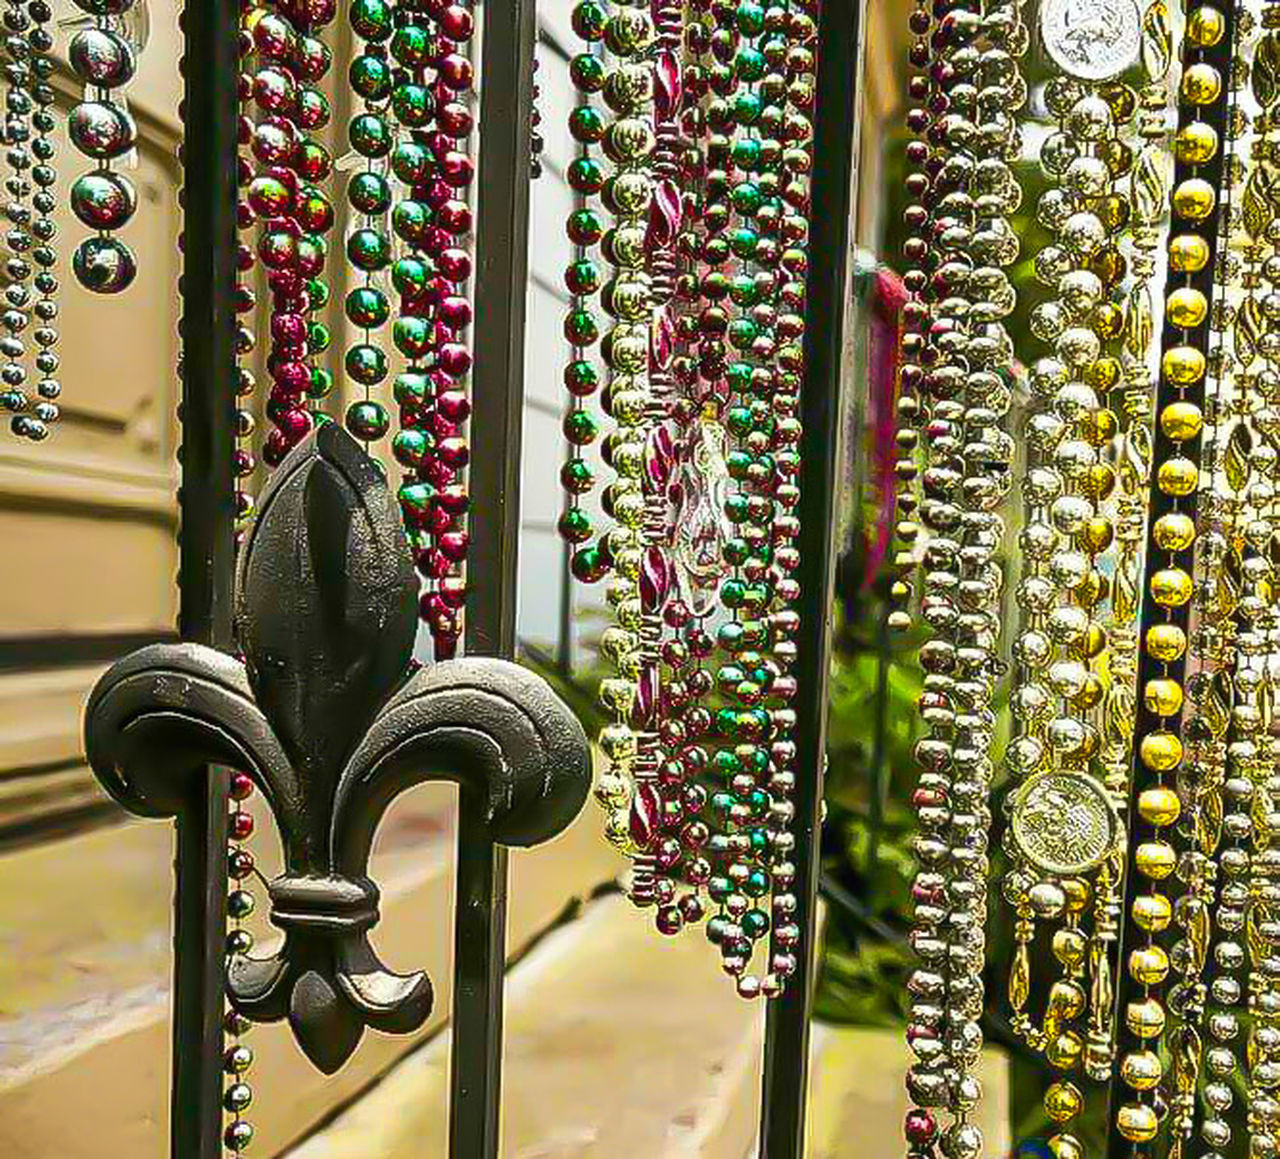 No People Day Close-up Outdoors Carnival Mardi Gras Beads Beads New Orleans, LA Colorful Bead Shiny Party Favors Jewlery Costume Jewelry Festival Iron Fence Decorative Fence Stairway Stair Railing Railing Antique Vintage